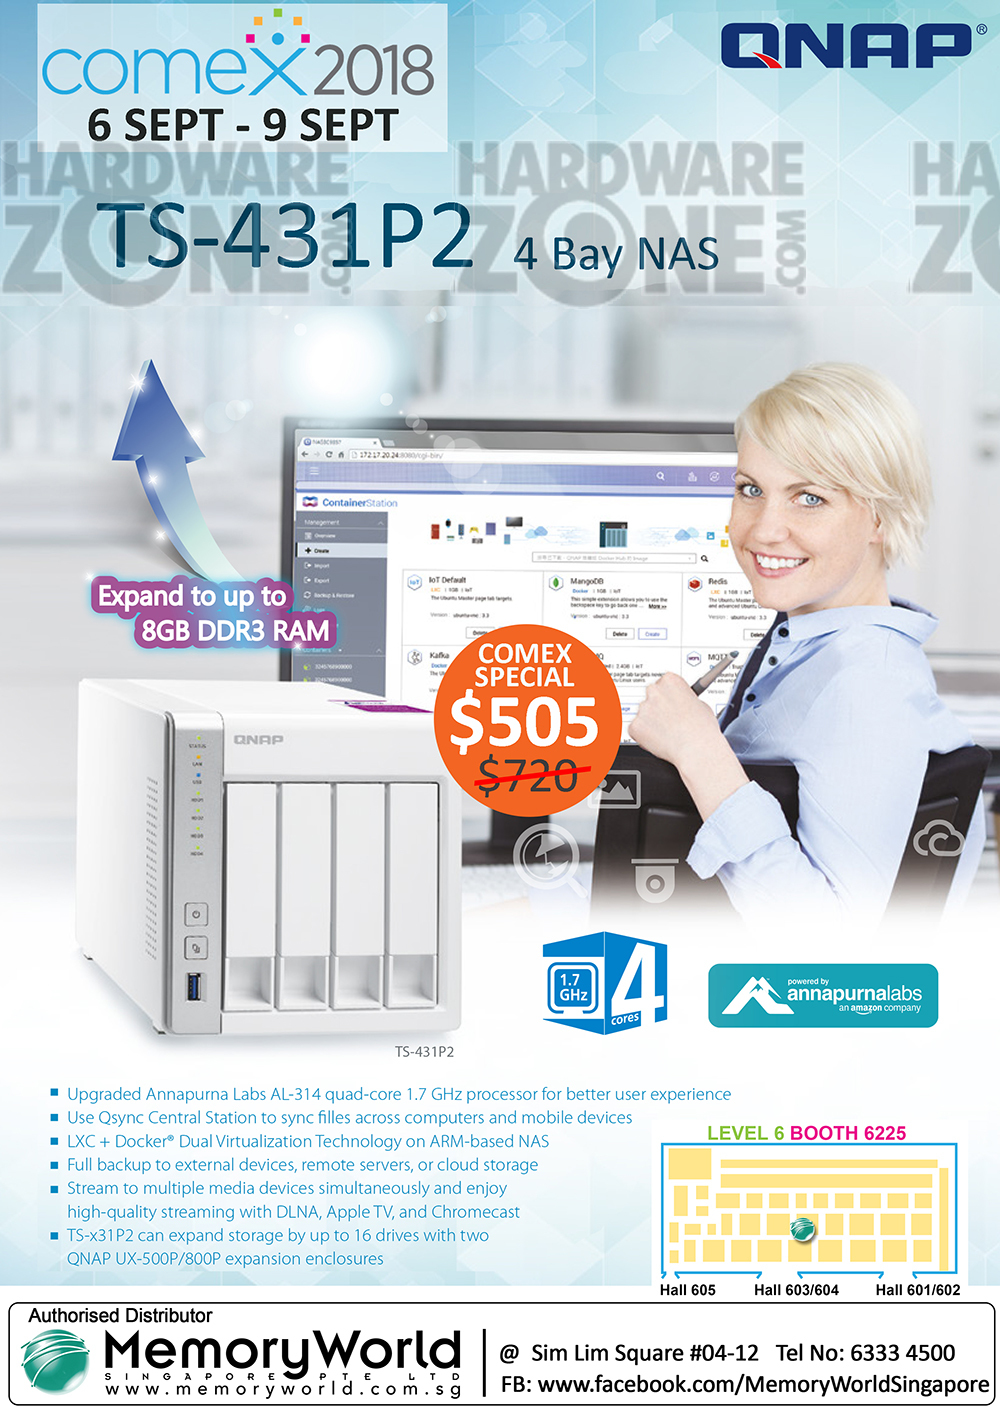 QNAP NAS - page 5 Brochures from COMEX 2018 Singapore on